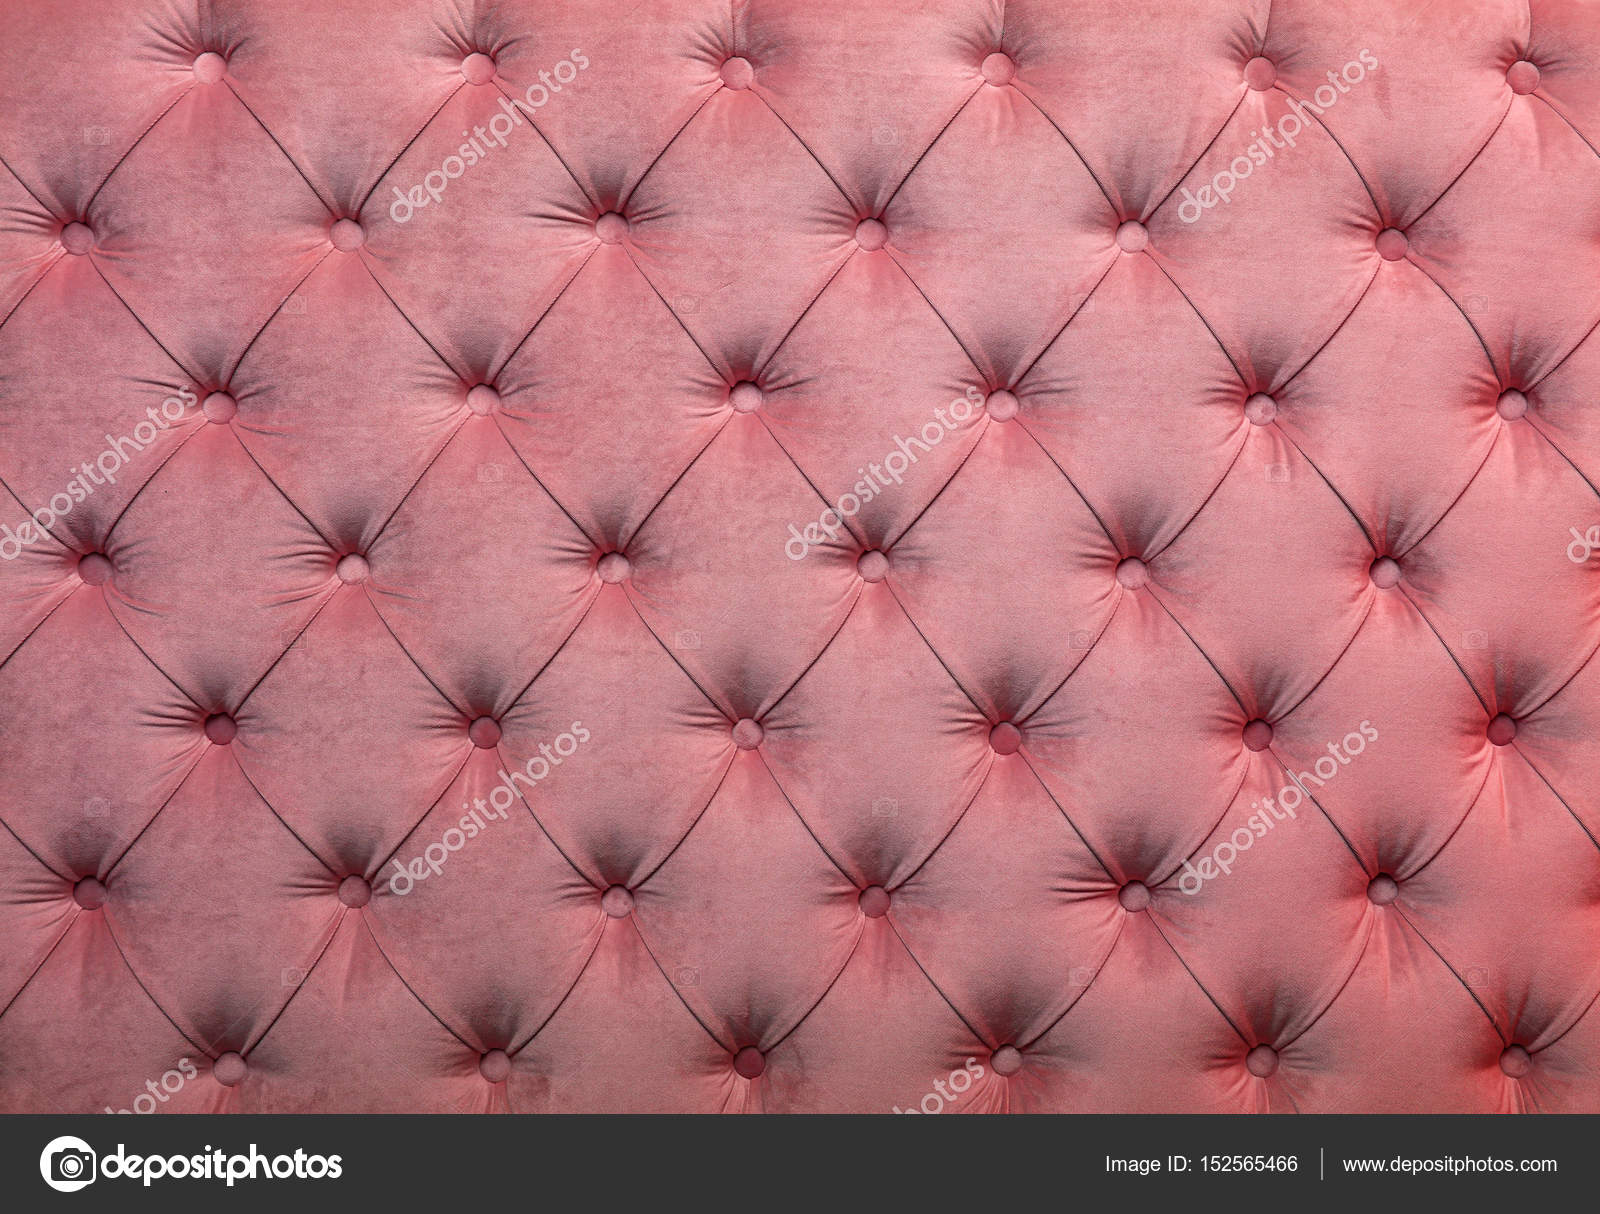 pink capitone tufted fabric upholstery texture stock photo breakingthewalls 152565466. Black Bedroom Furniture Sets. Home Design Ideas